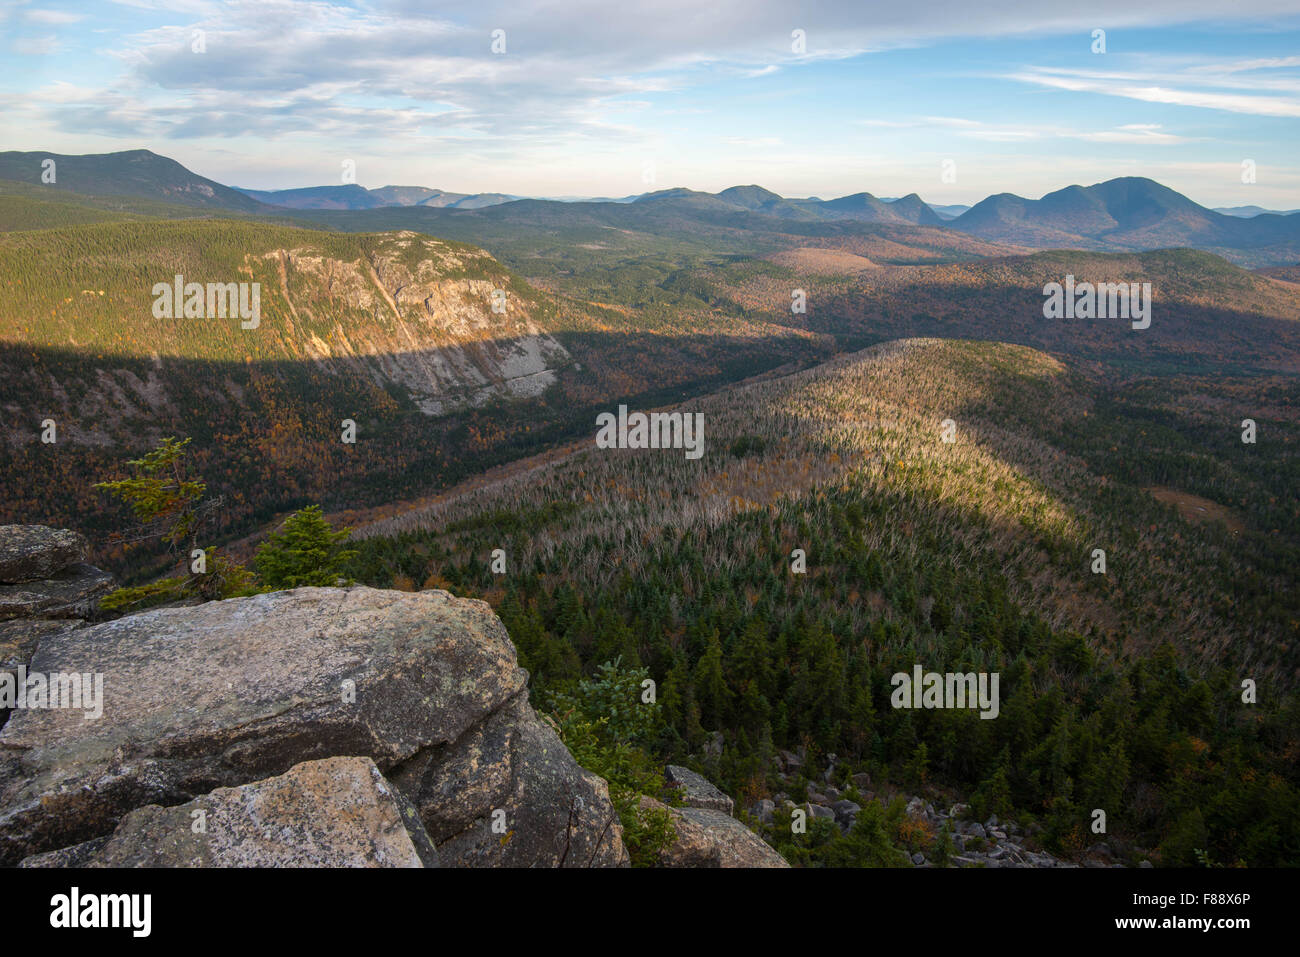 View of Pemigewasset Wilderness from Zeacliff in the fall, White Mountains, New Hampshire, USA - Stock Image